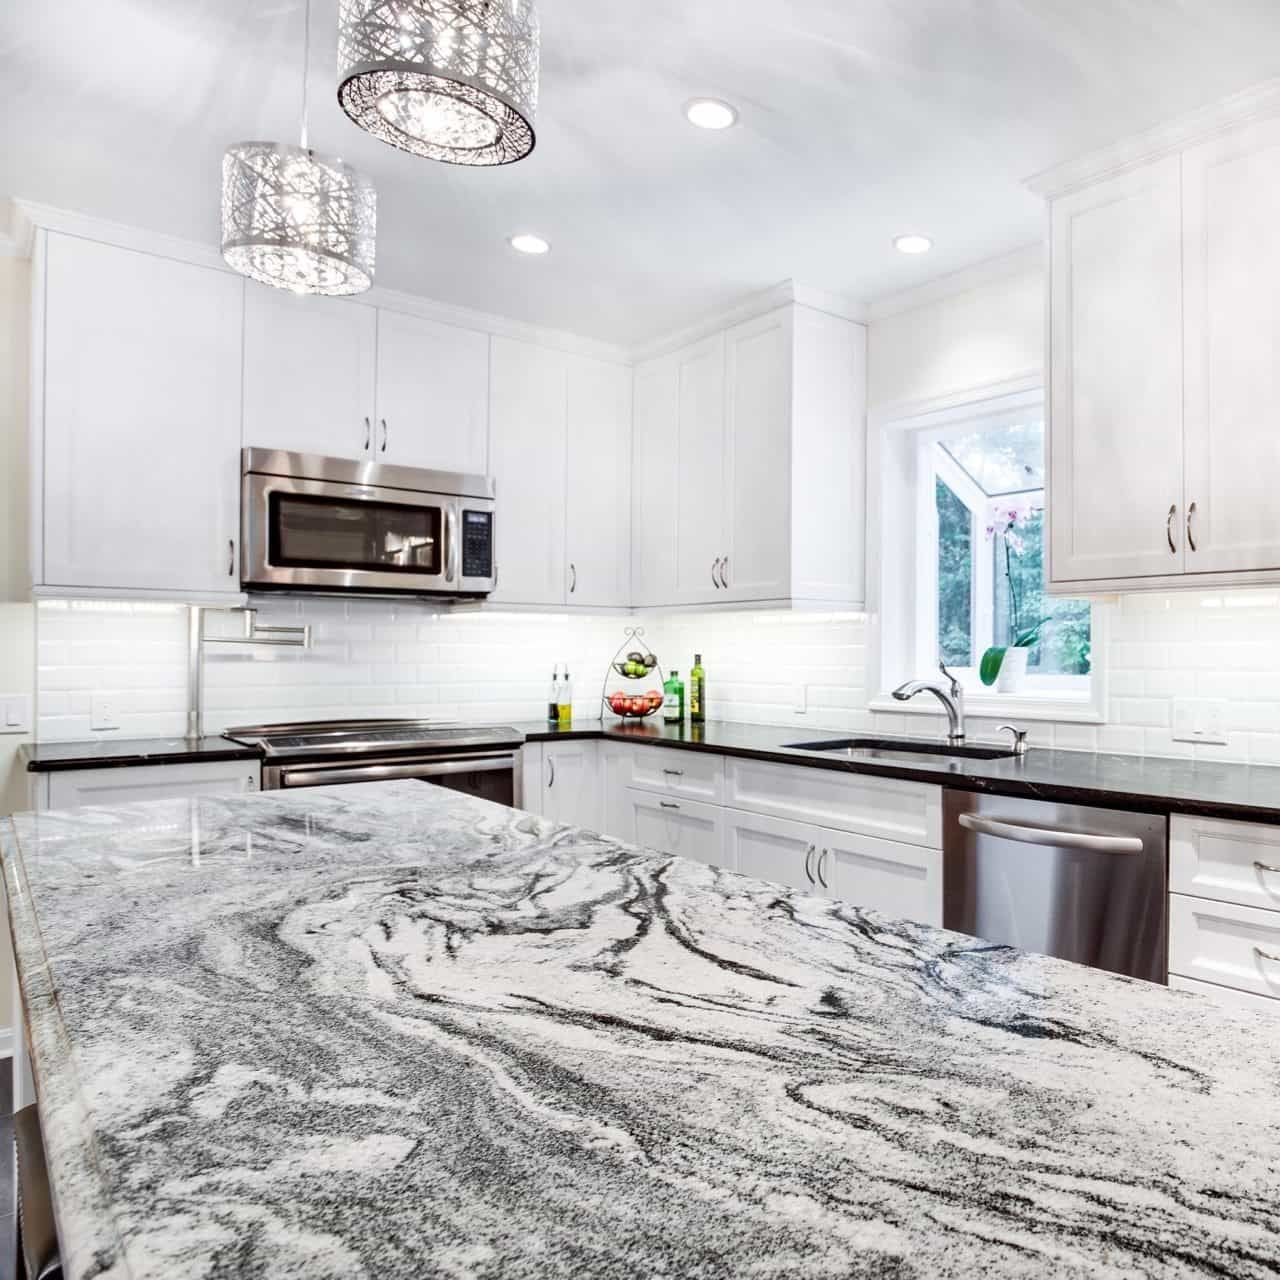 White Kitchen Cabinets With White Marble Countertops: The Most Popular Granite Kitchen Countertops In 2019